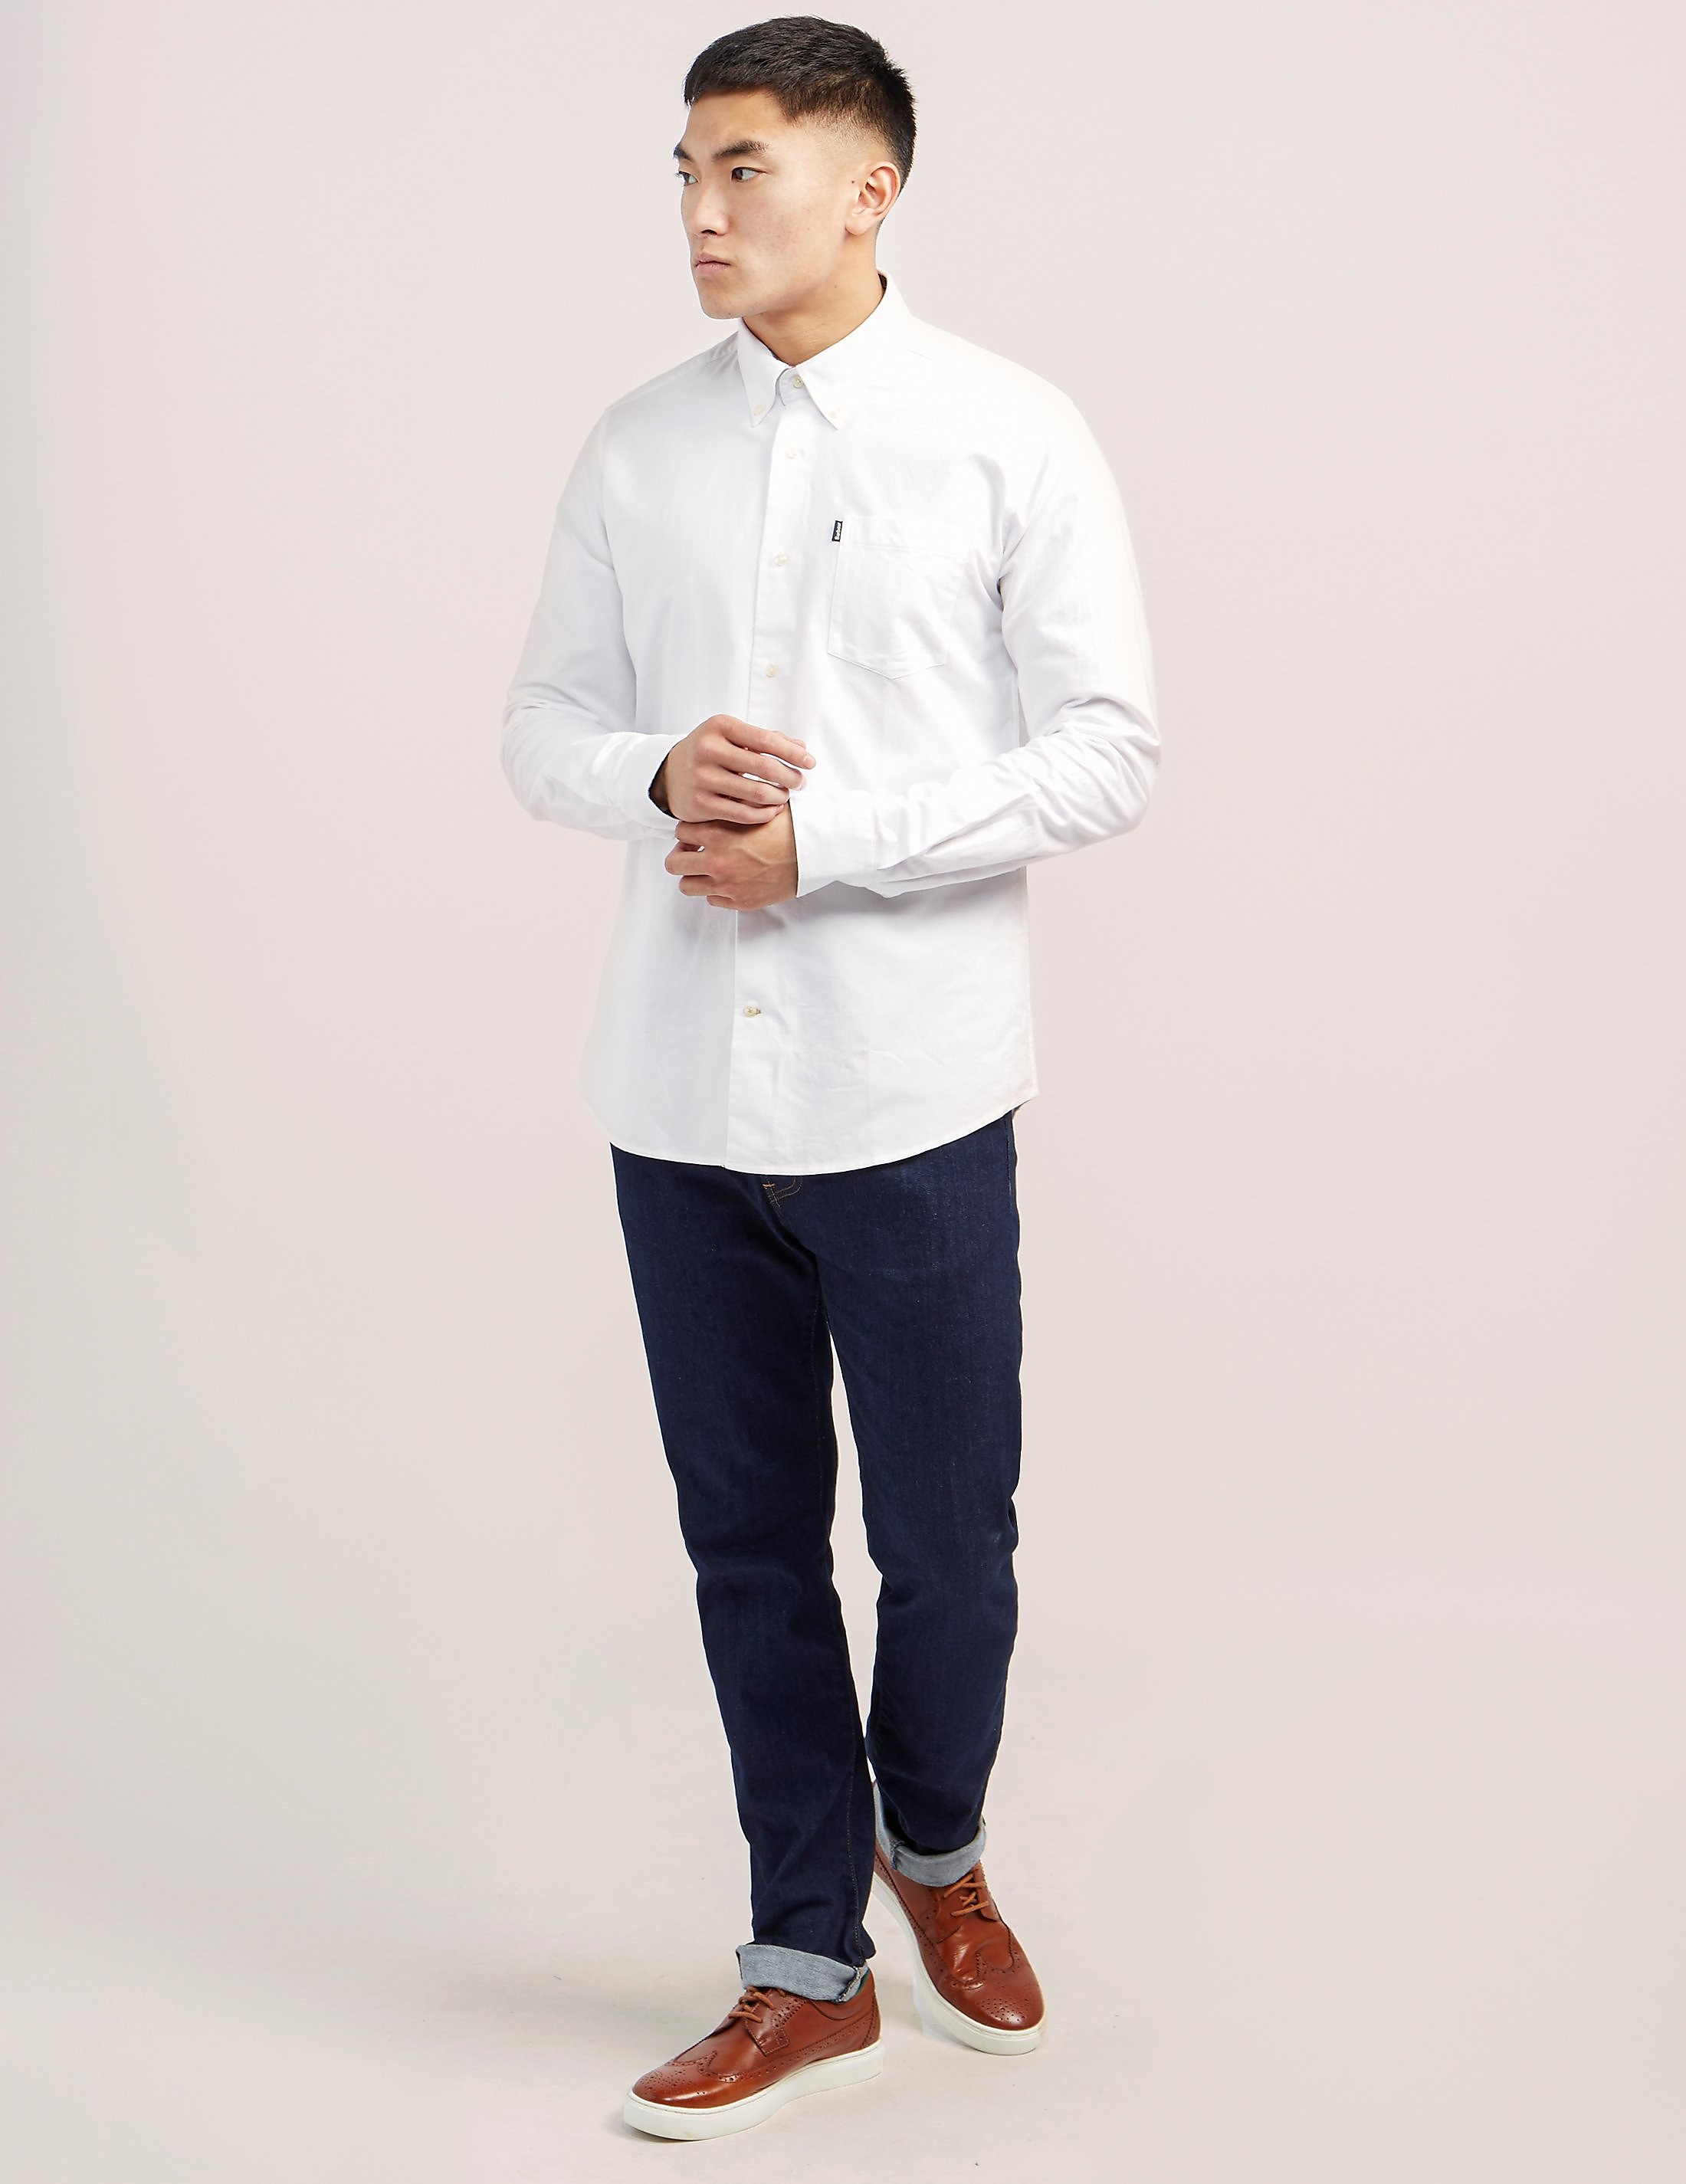 Barbour Tailored Fit Long Sleeve Oxford Shirt